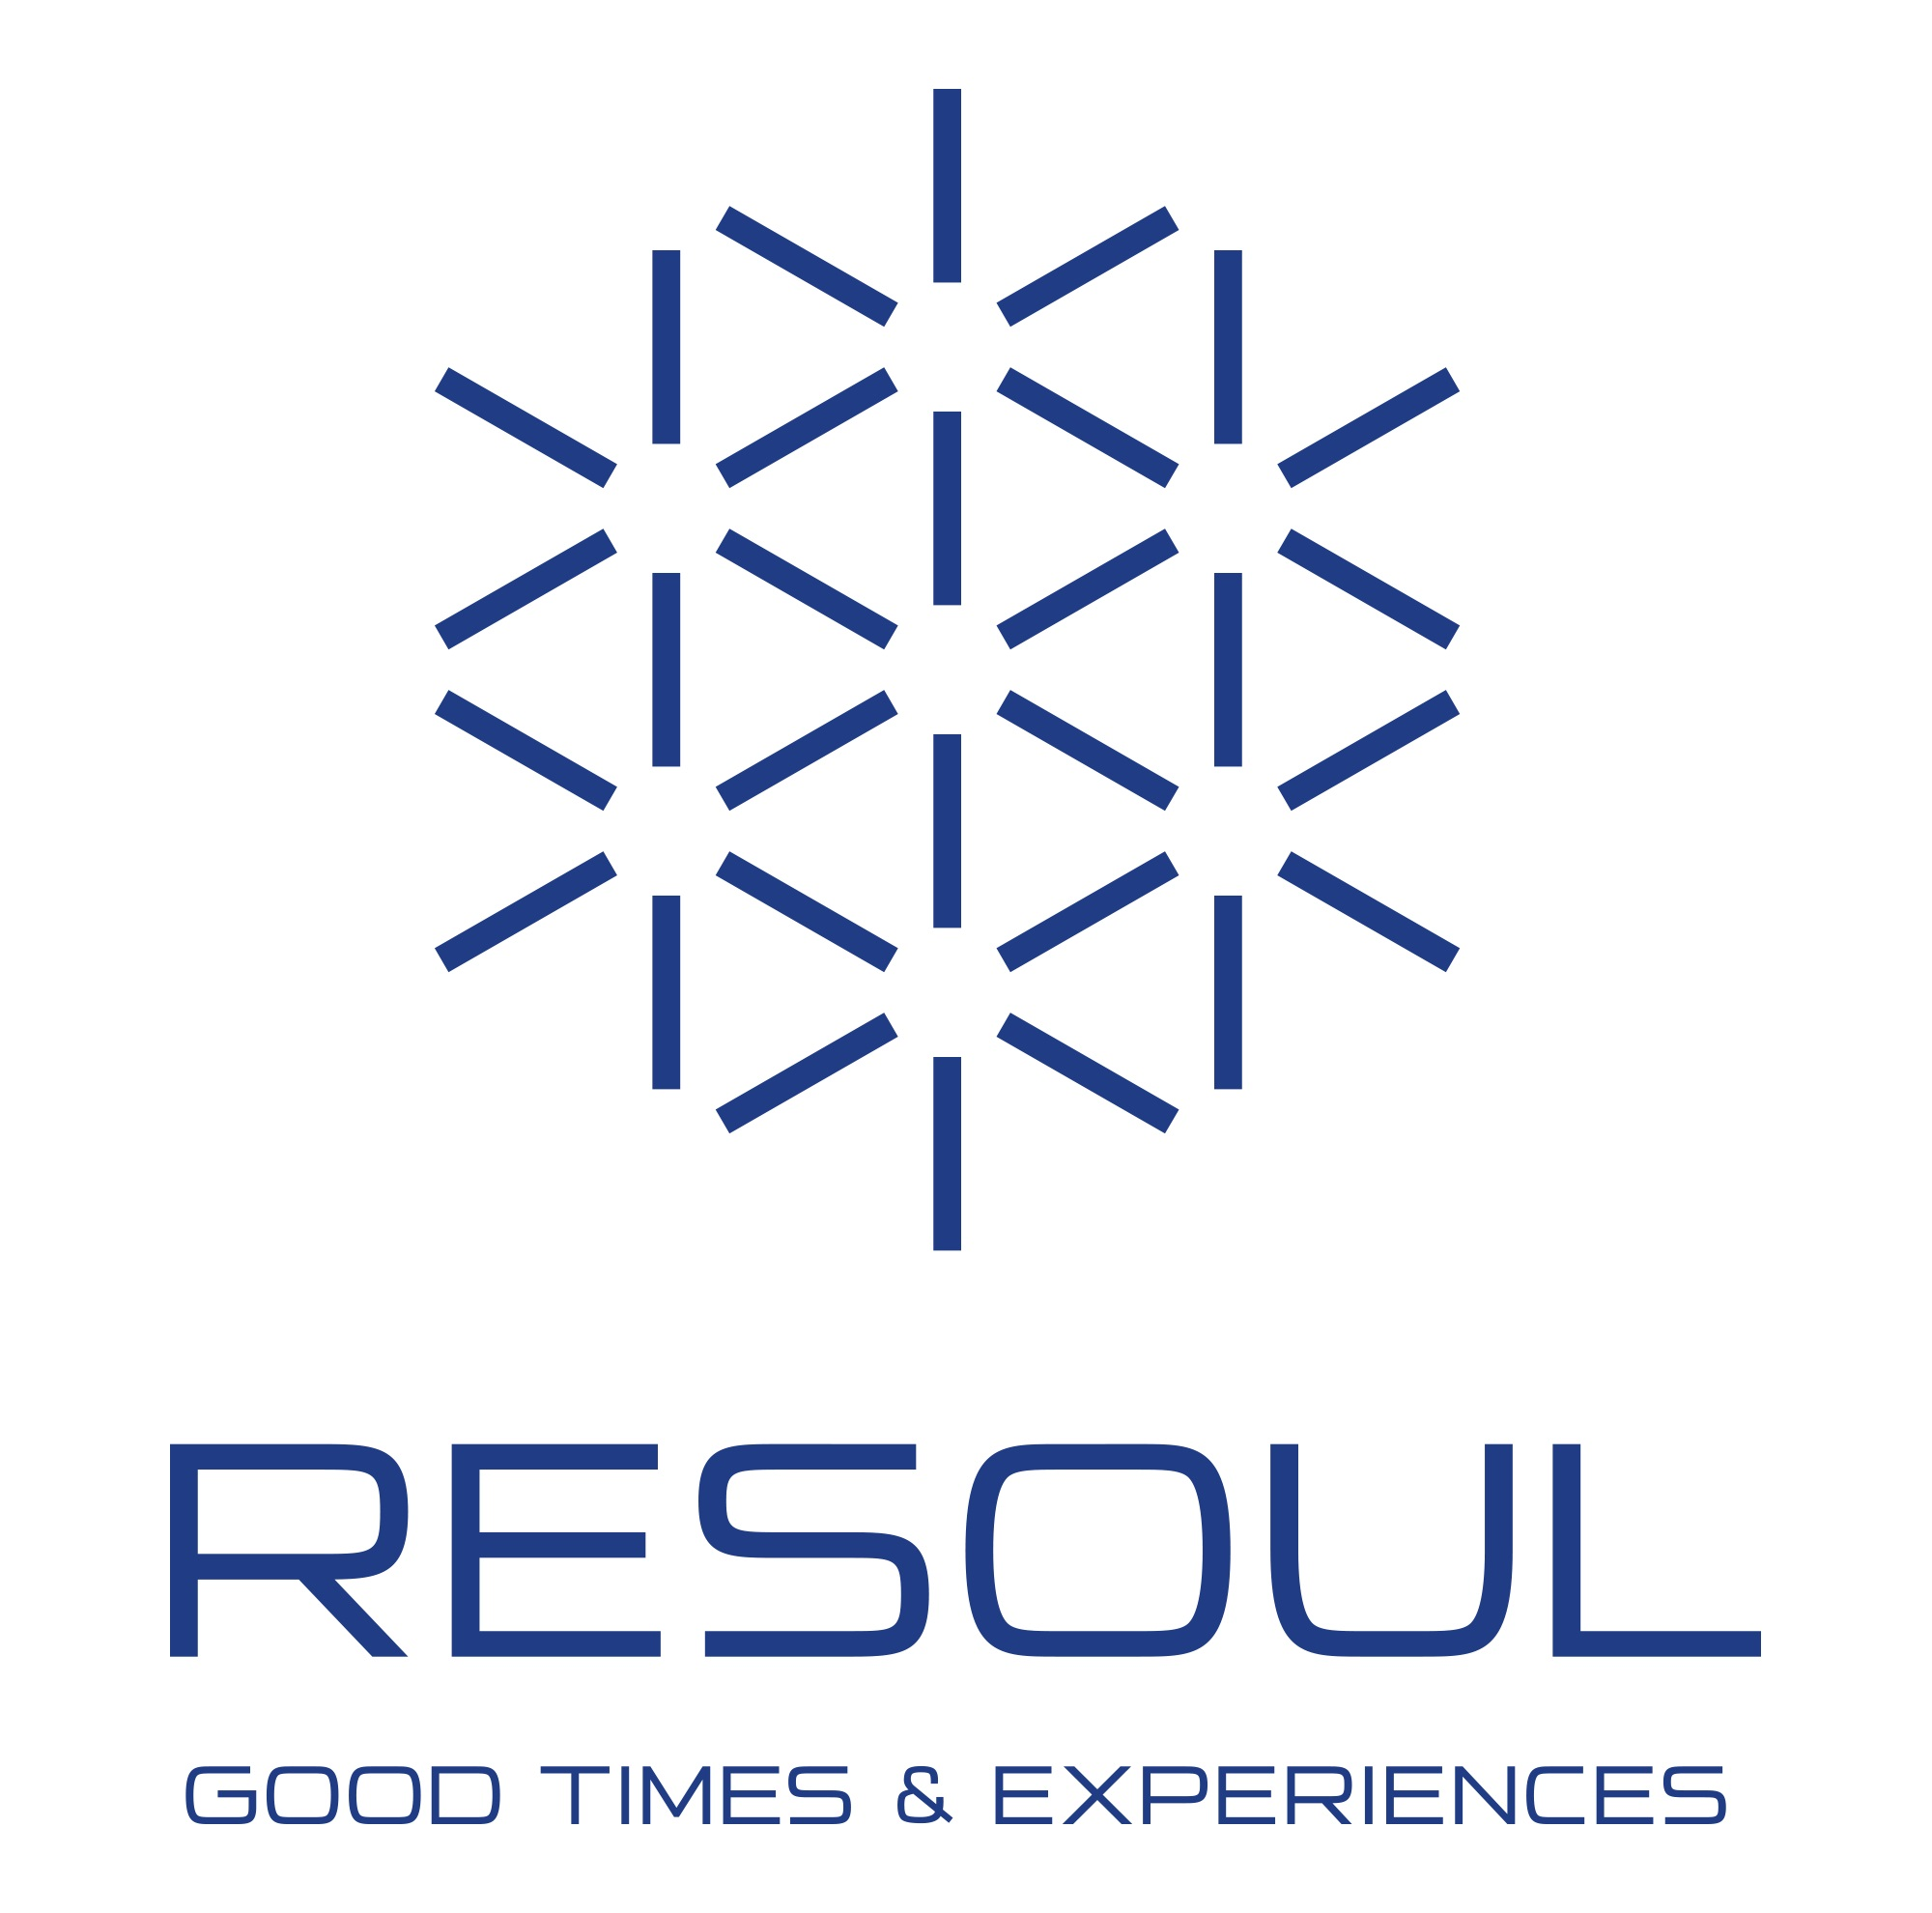 Resoul_Primary_logo